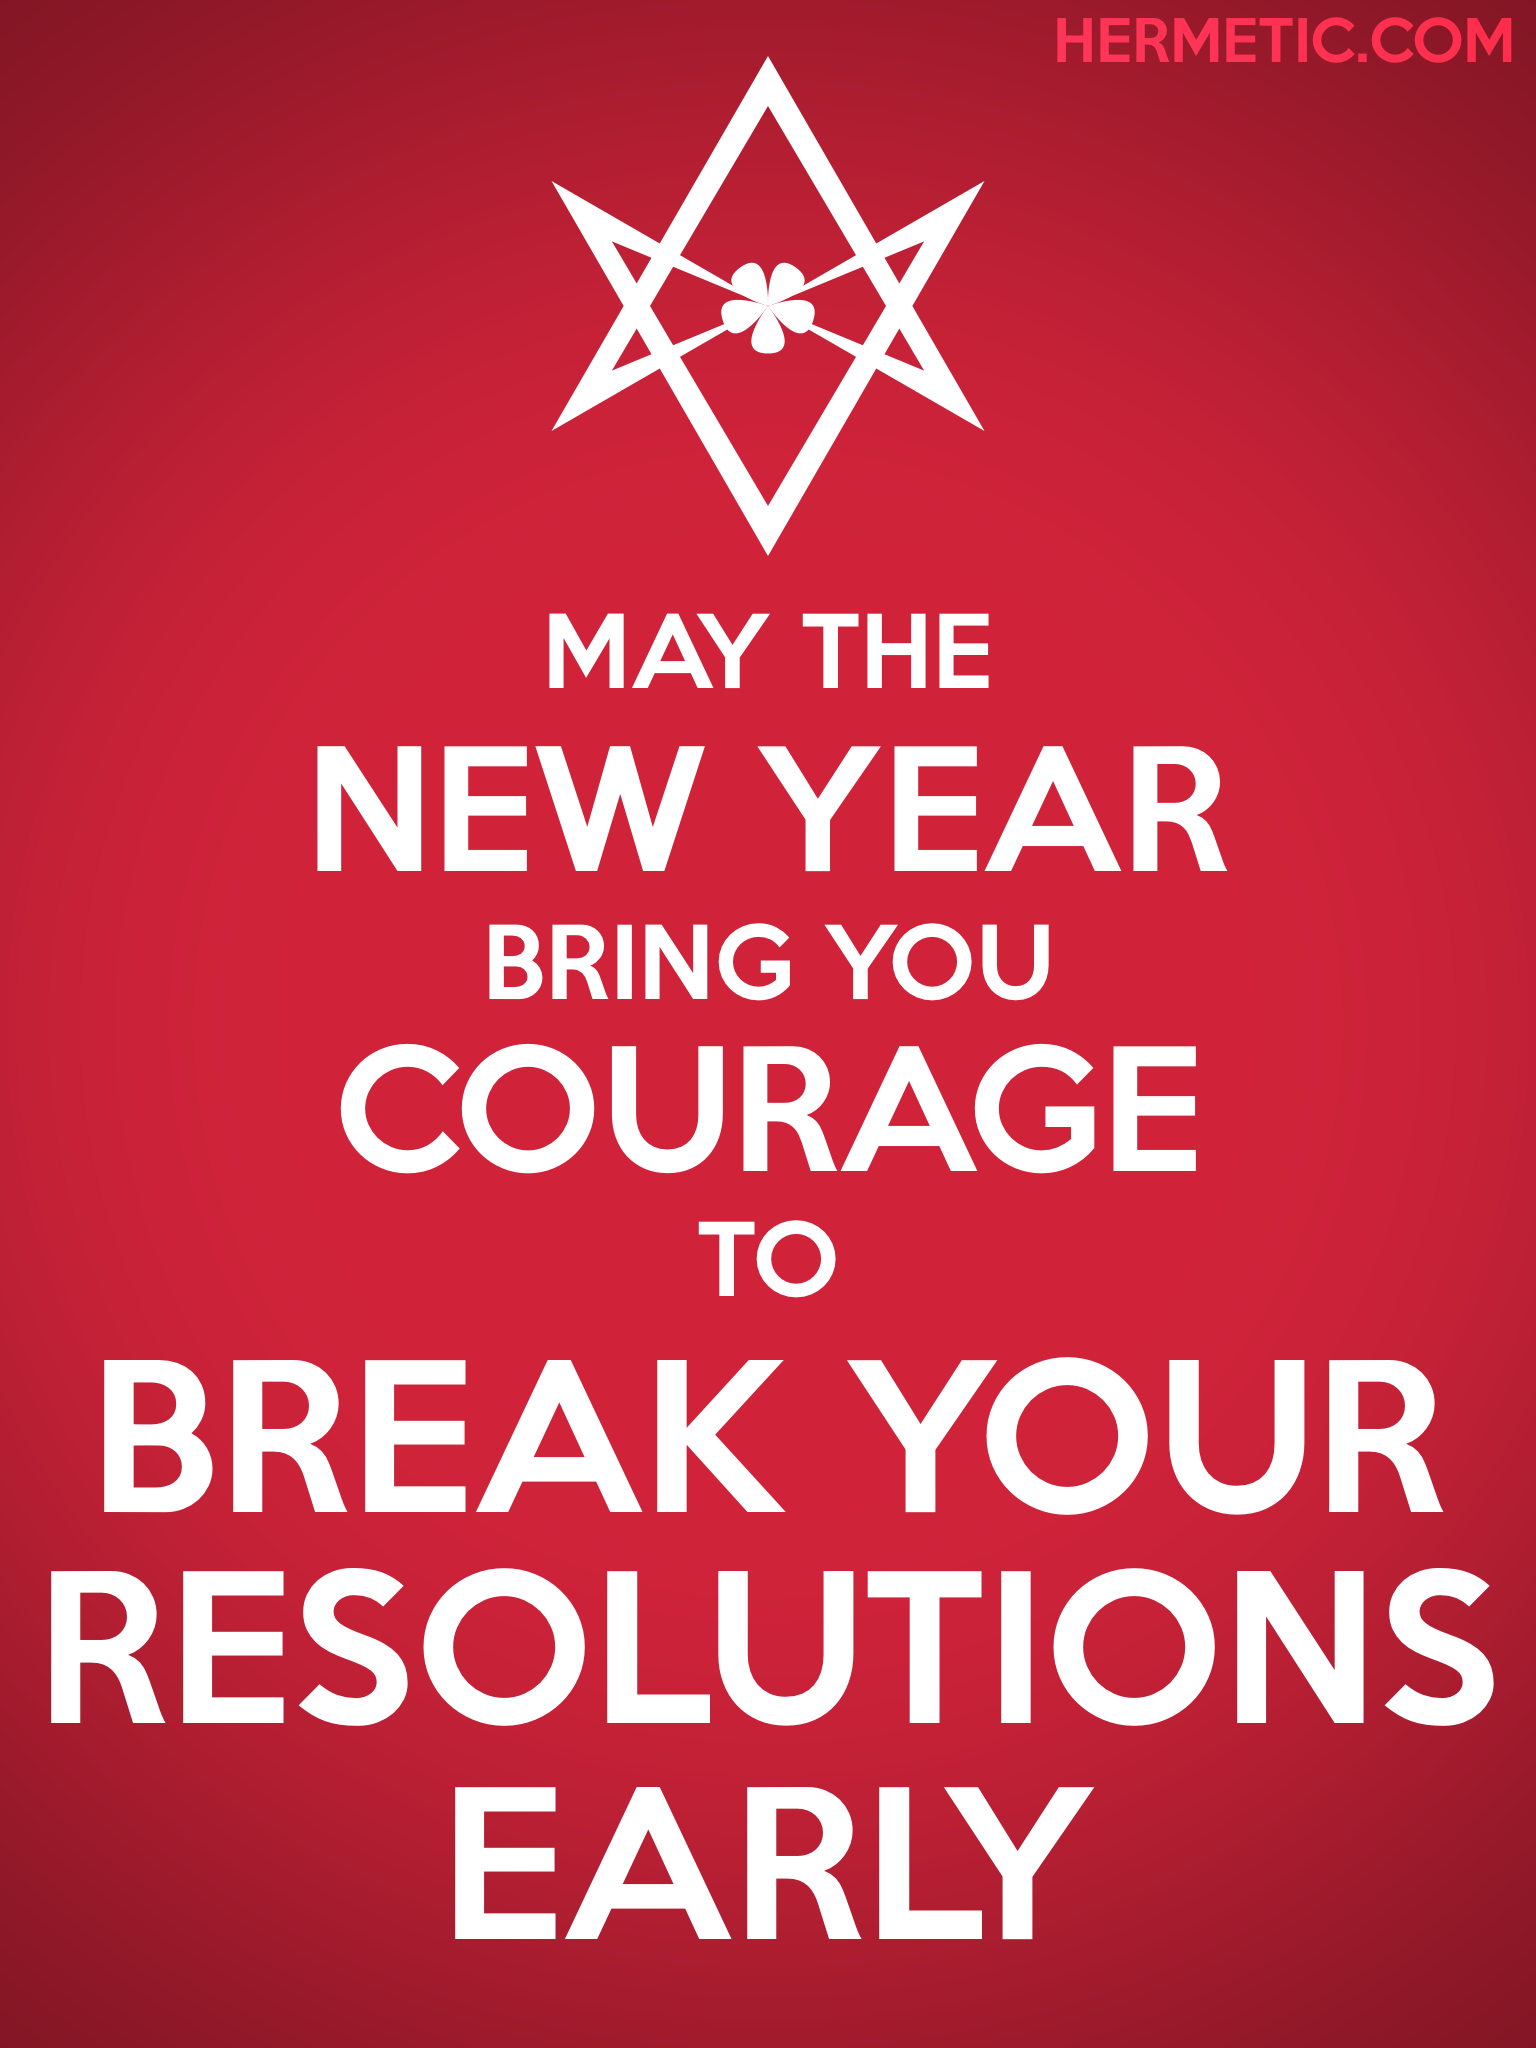 Unicursal NEW YEAR COURAGE Propaganda Poster from Hermetic Library Ministry of Information